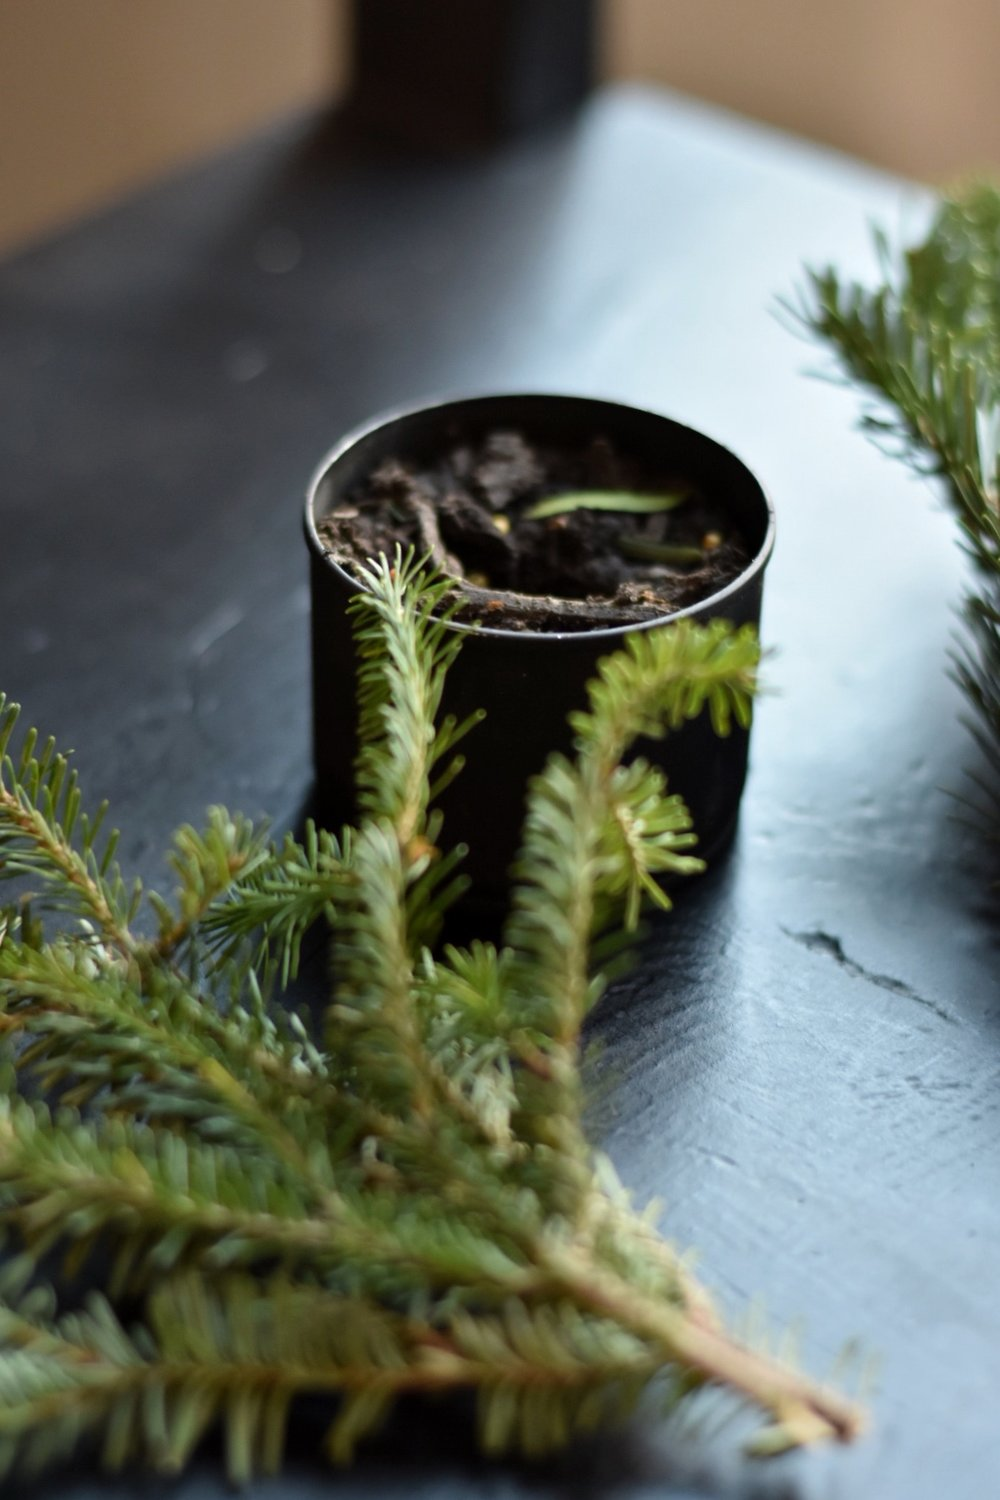 Inexpensive Christmas Decorating - Use Natural Greenery to Decorate for Christmas - Rocky Hedge Farm.jpg